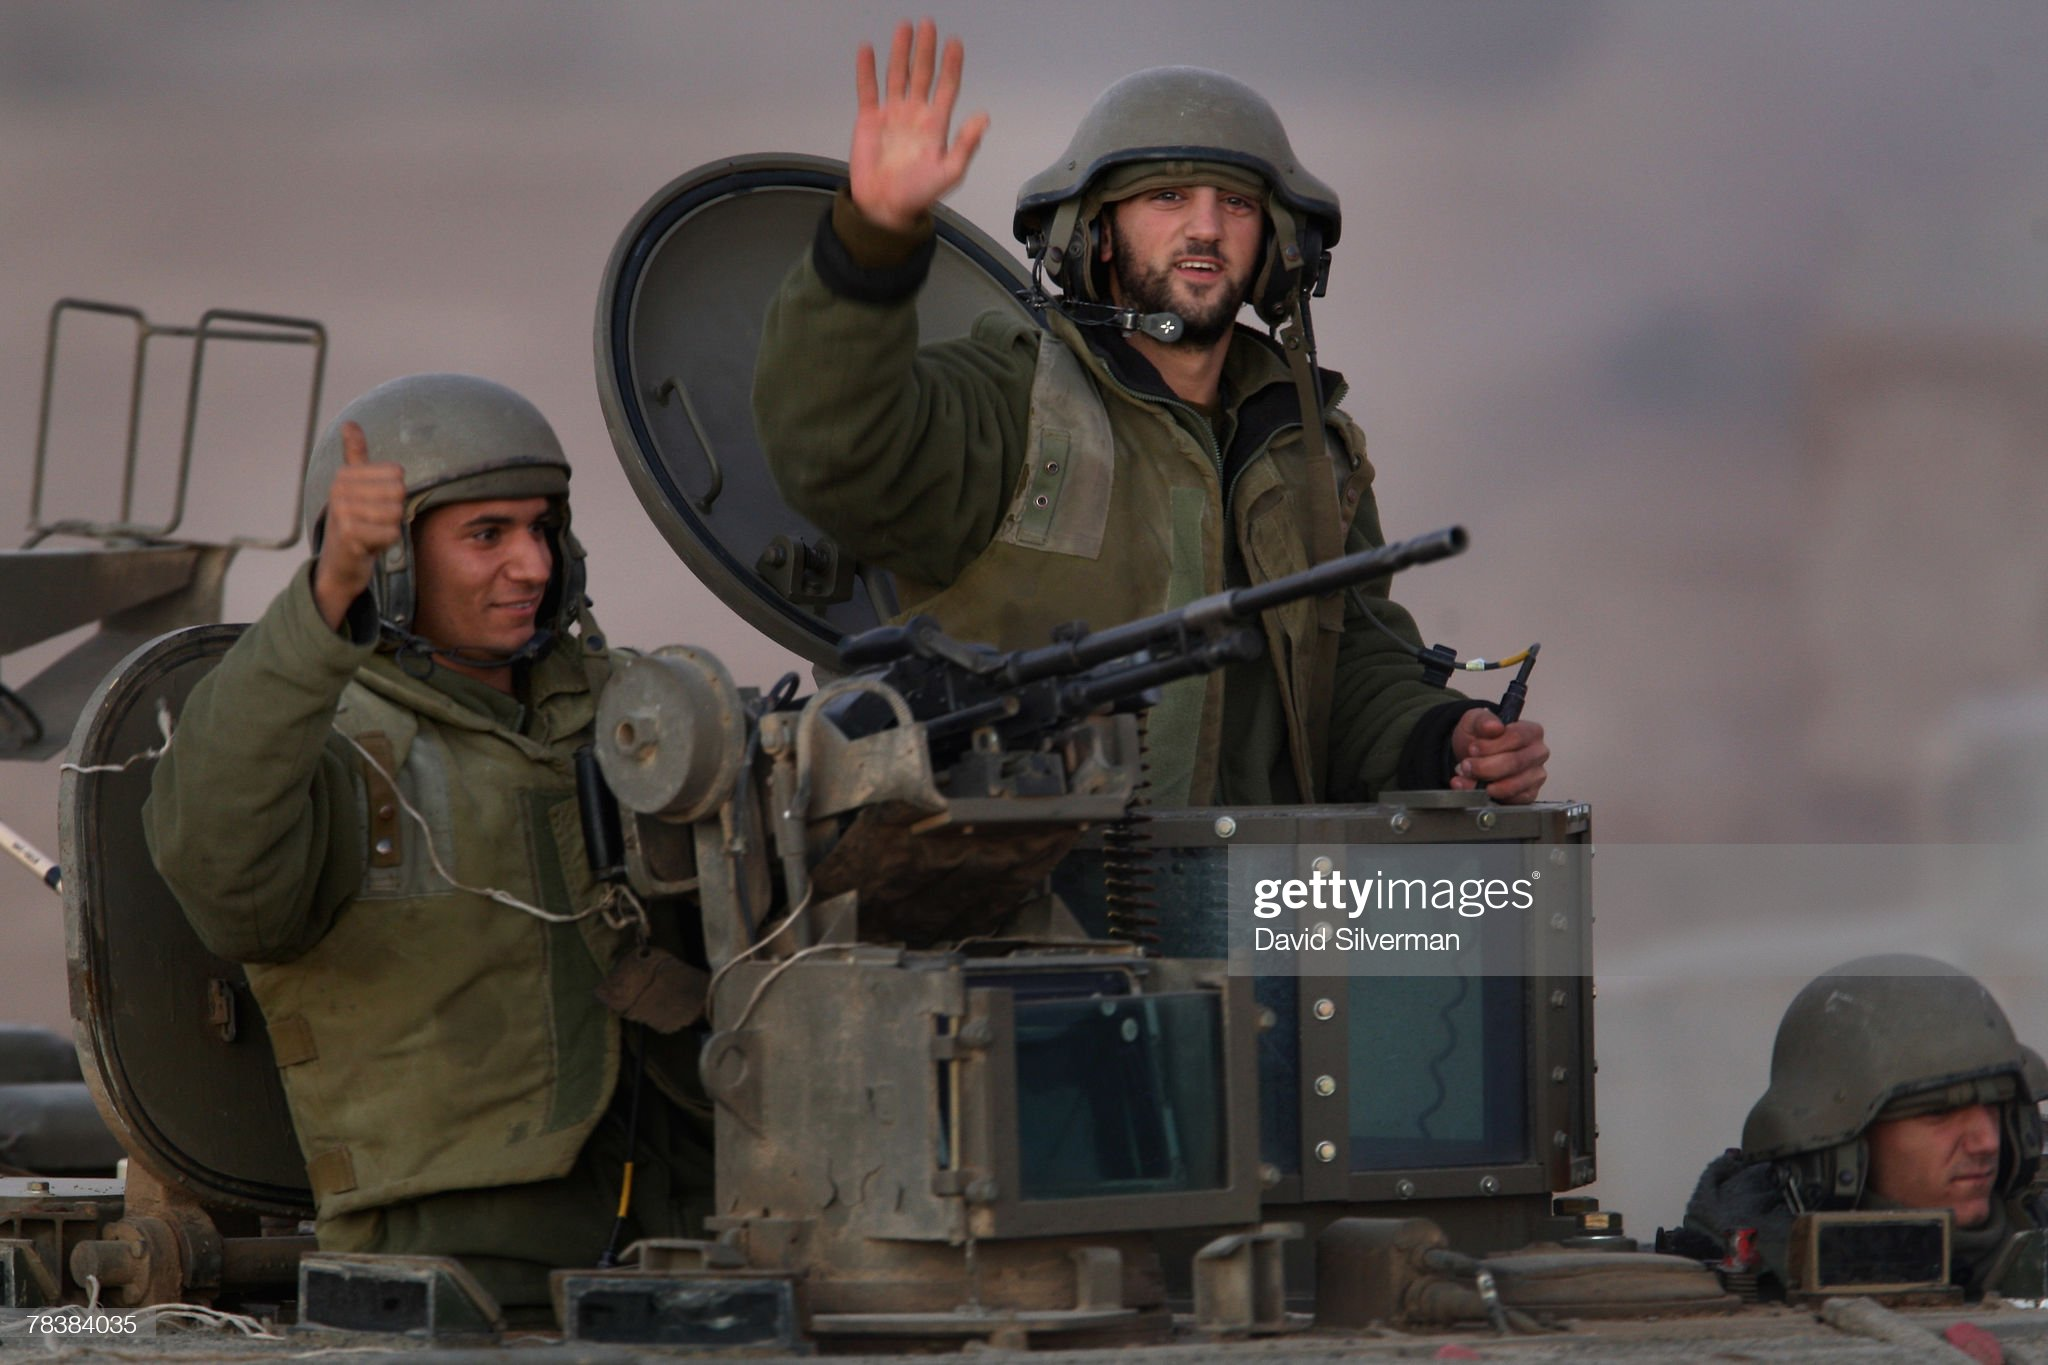 israeli-soldiers-celebrate-their-safe-return-to-base-in-a-column-of-picture-id78384035?s=2048x2048